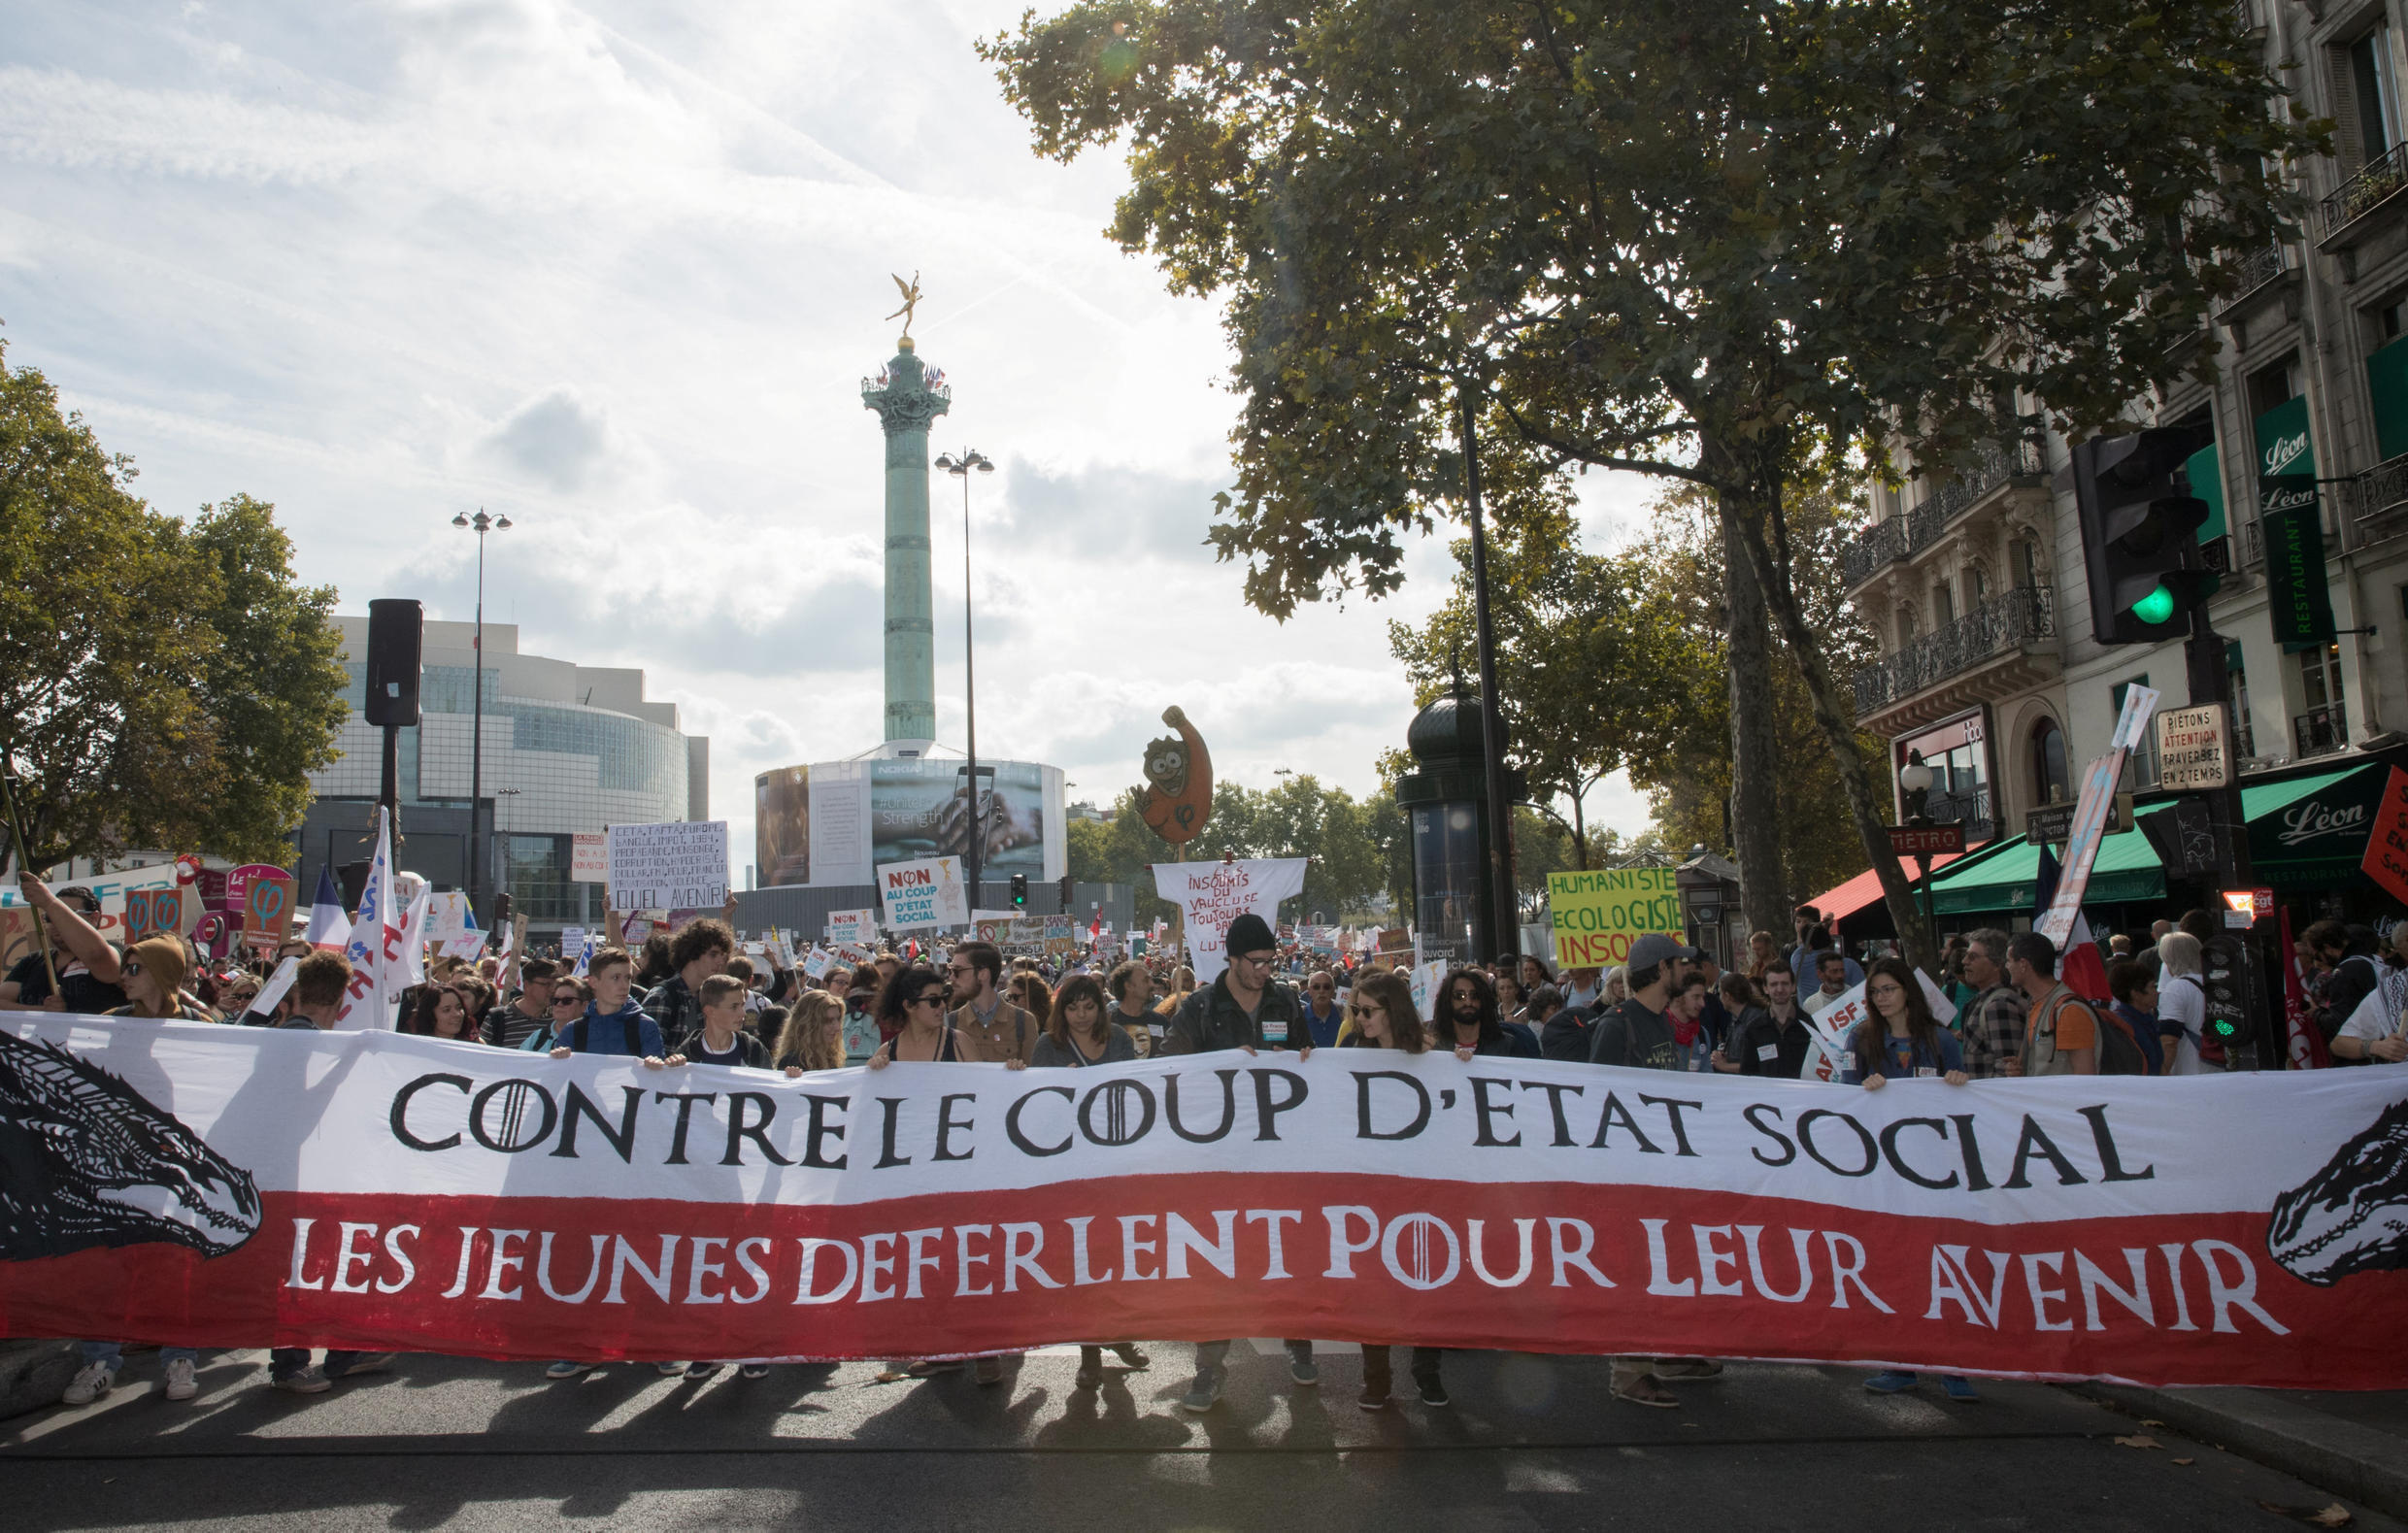 """Protestors march behind a banner reading """"against the social coup, youth flood on the streets for their future"""" during a """"France Insoumise"""" (France Unbowed) party's demonstration against the government's labour reforms in Paris, France, September 23, 2017."""